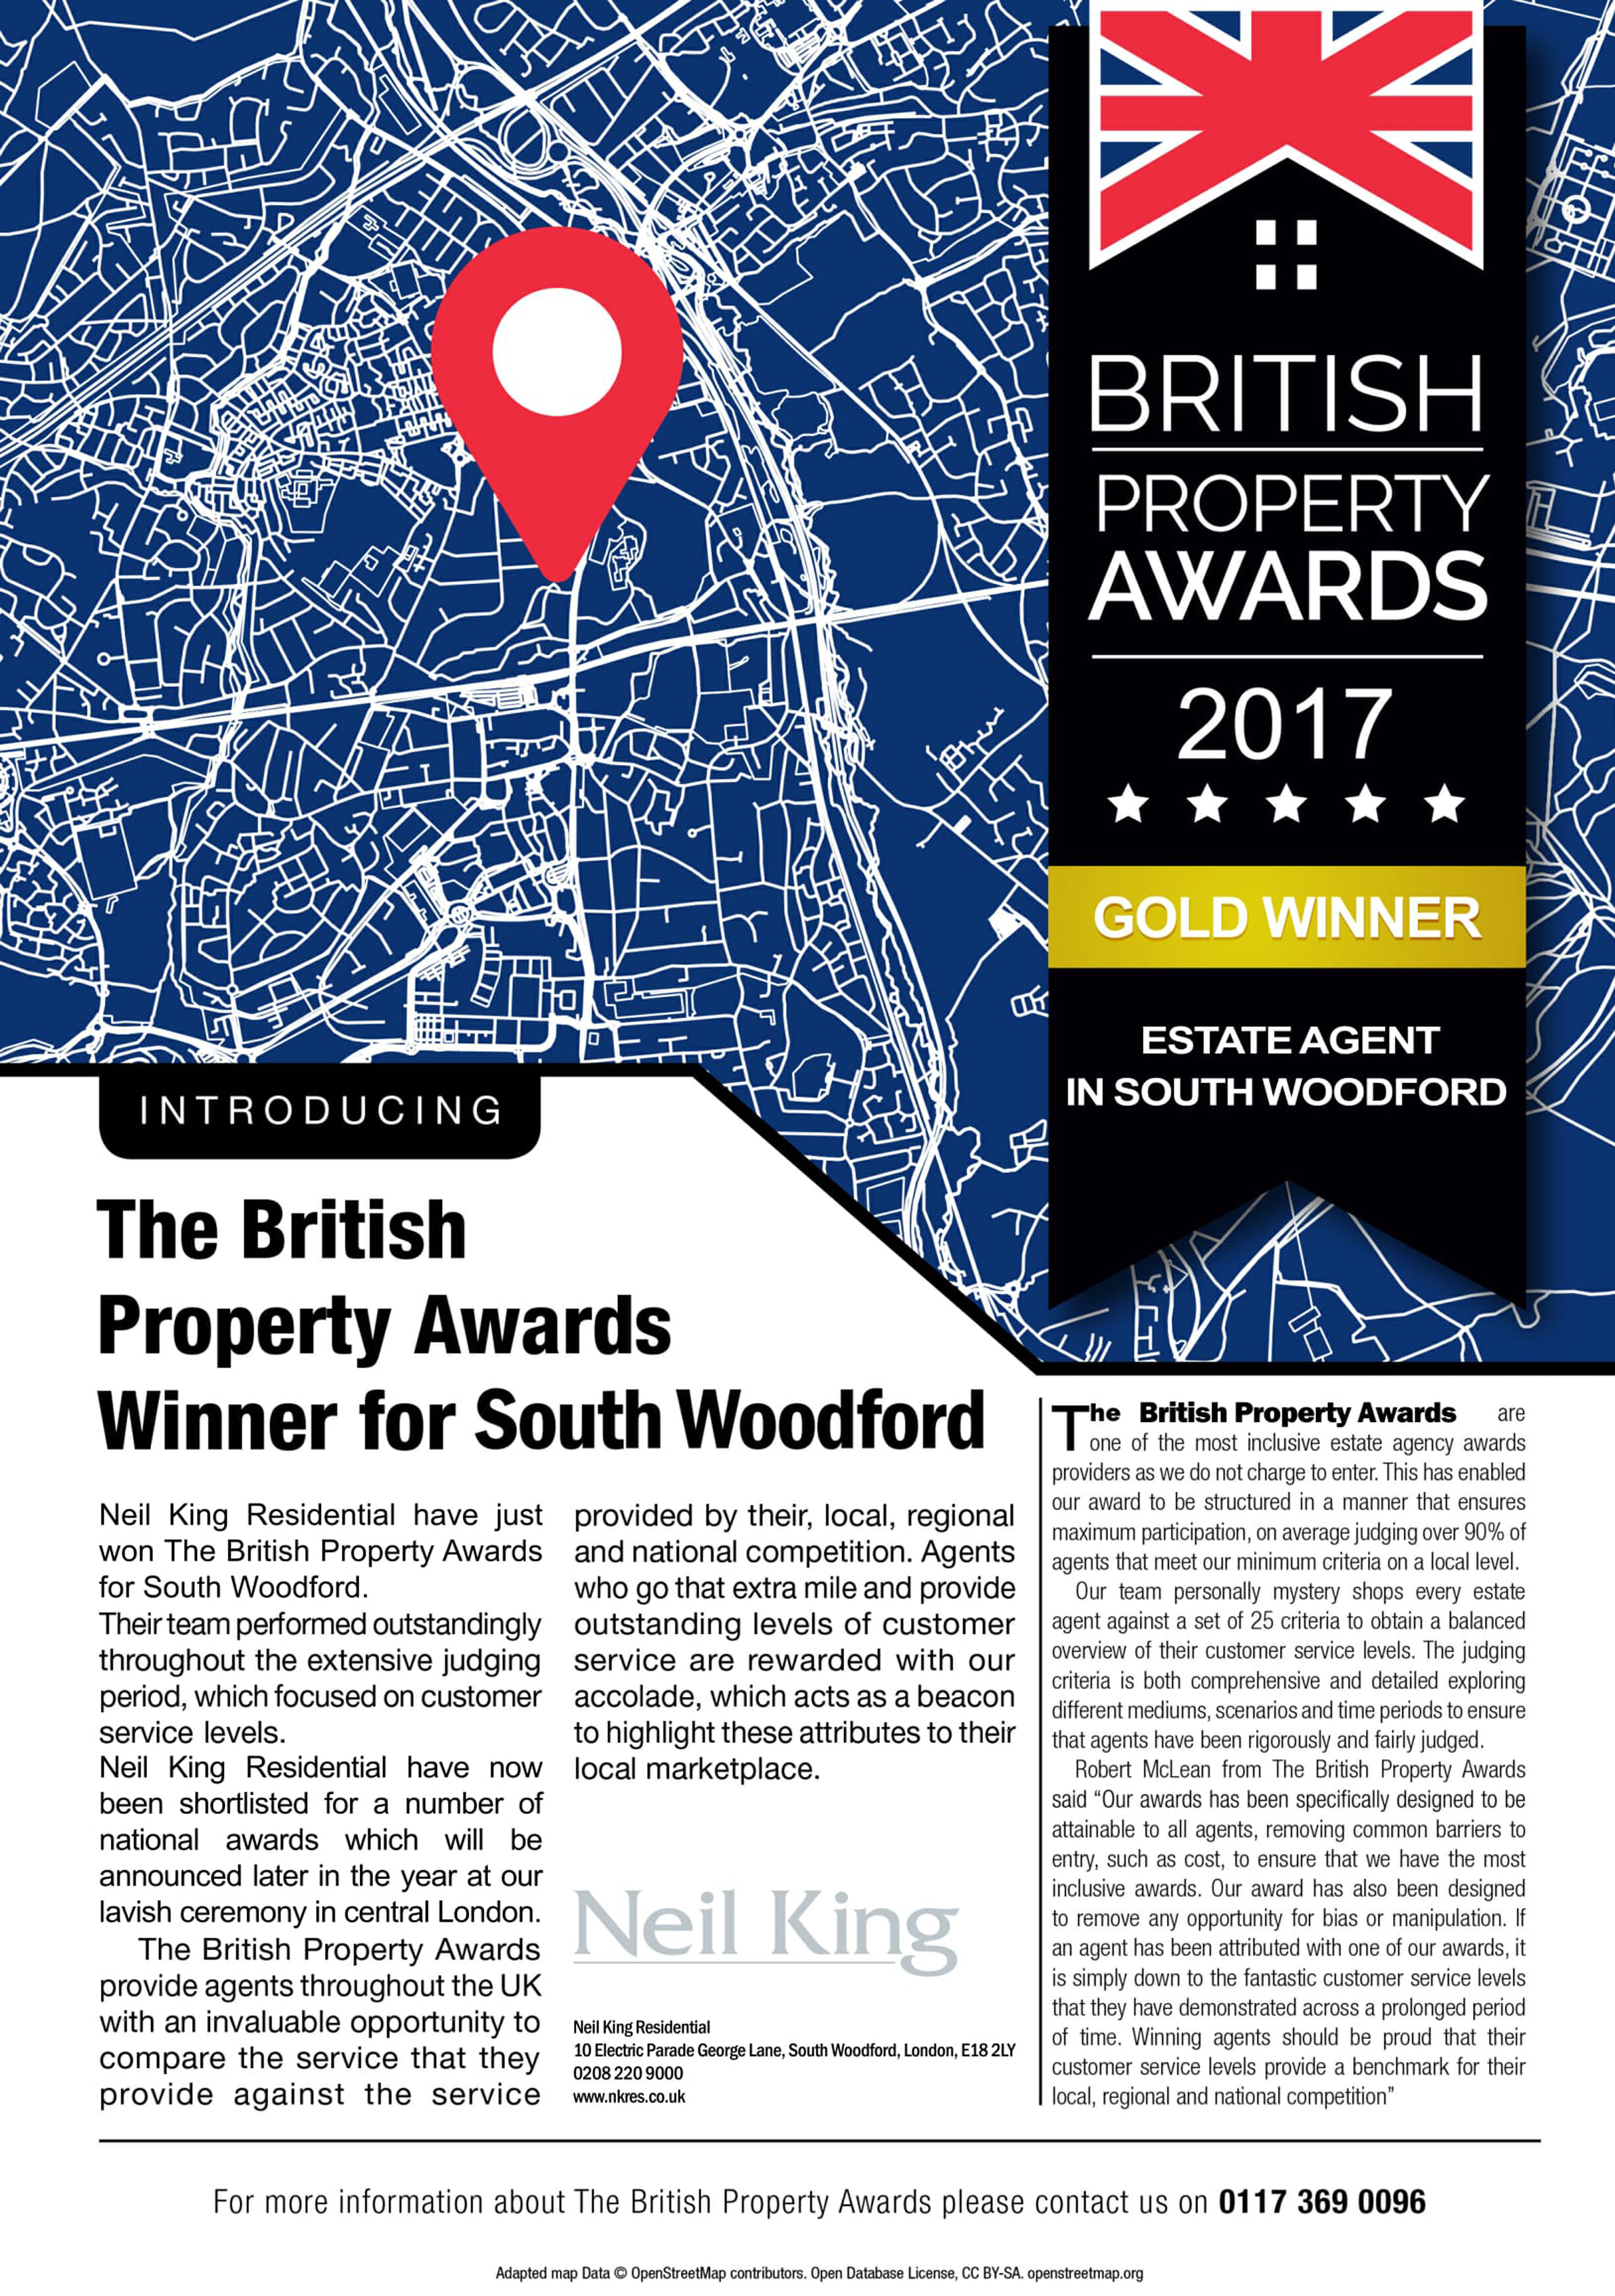 INTRODUCING THE BRITISH PROPERTY AWARDS WINNER FOR SOUTH WOODFORD